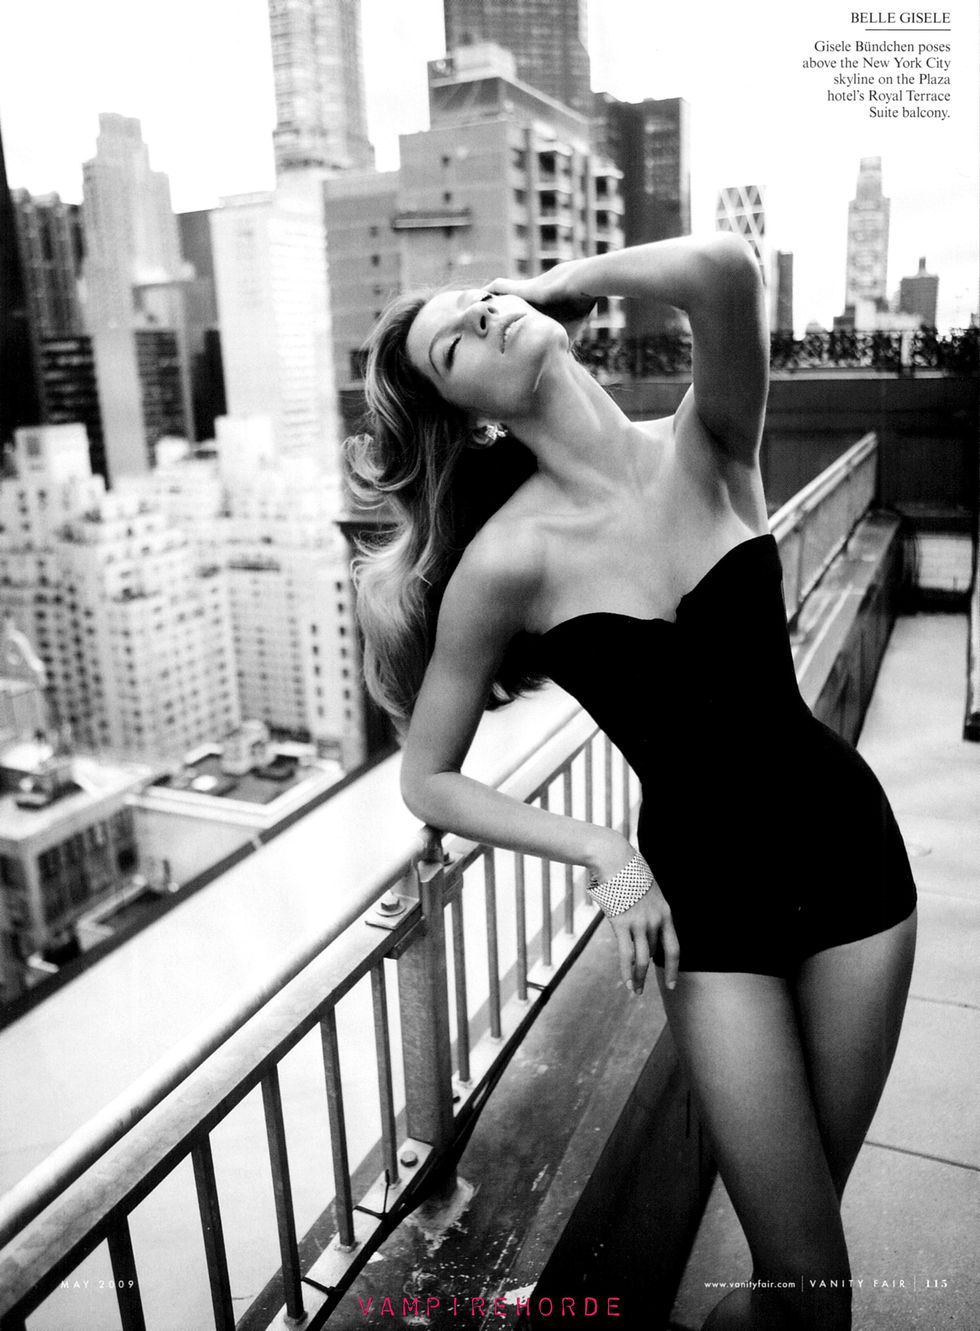 Gisele bundchen vanity fair may 2009 hq scans new pics